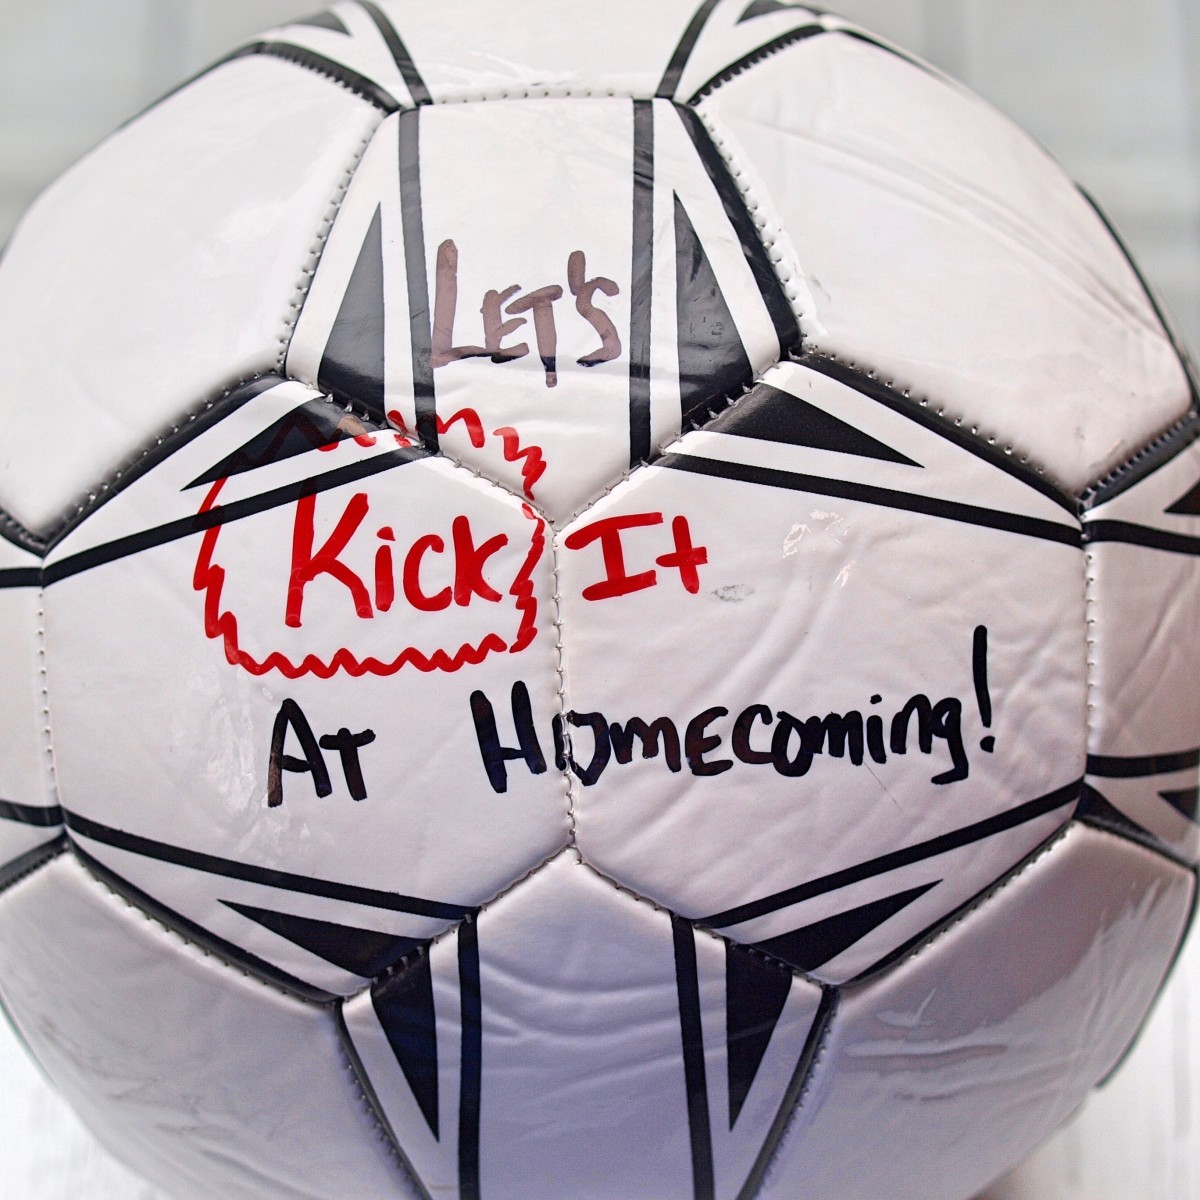 You're sure to score a homecoming date with this fun proposal for a soccer fan.